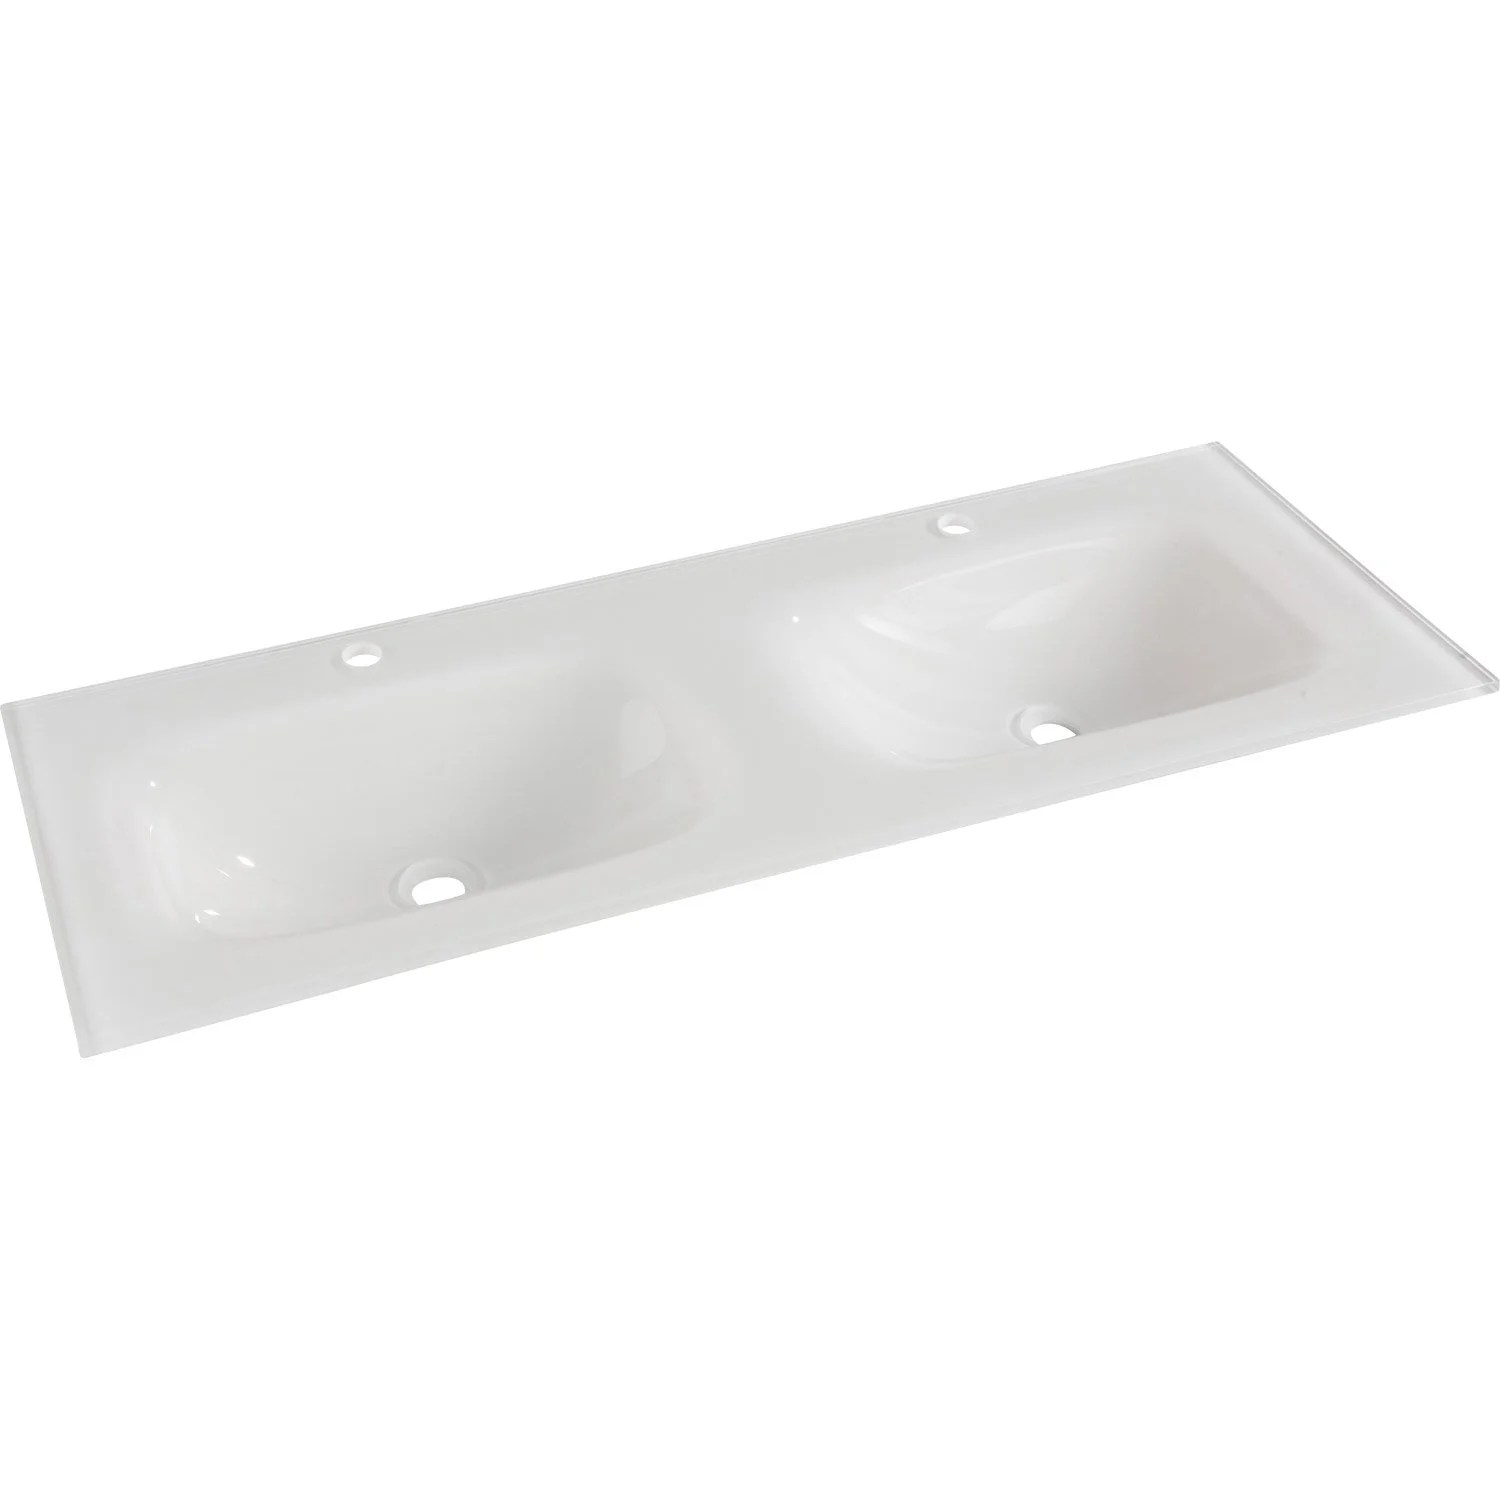 Evacuation Lavabo Double Vasque Plan Vasque Double Opale Verre Trempé 121 Cm Leroy Merlin